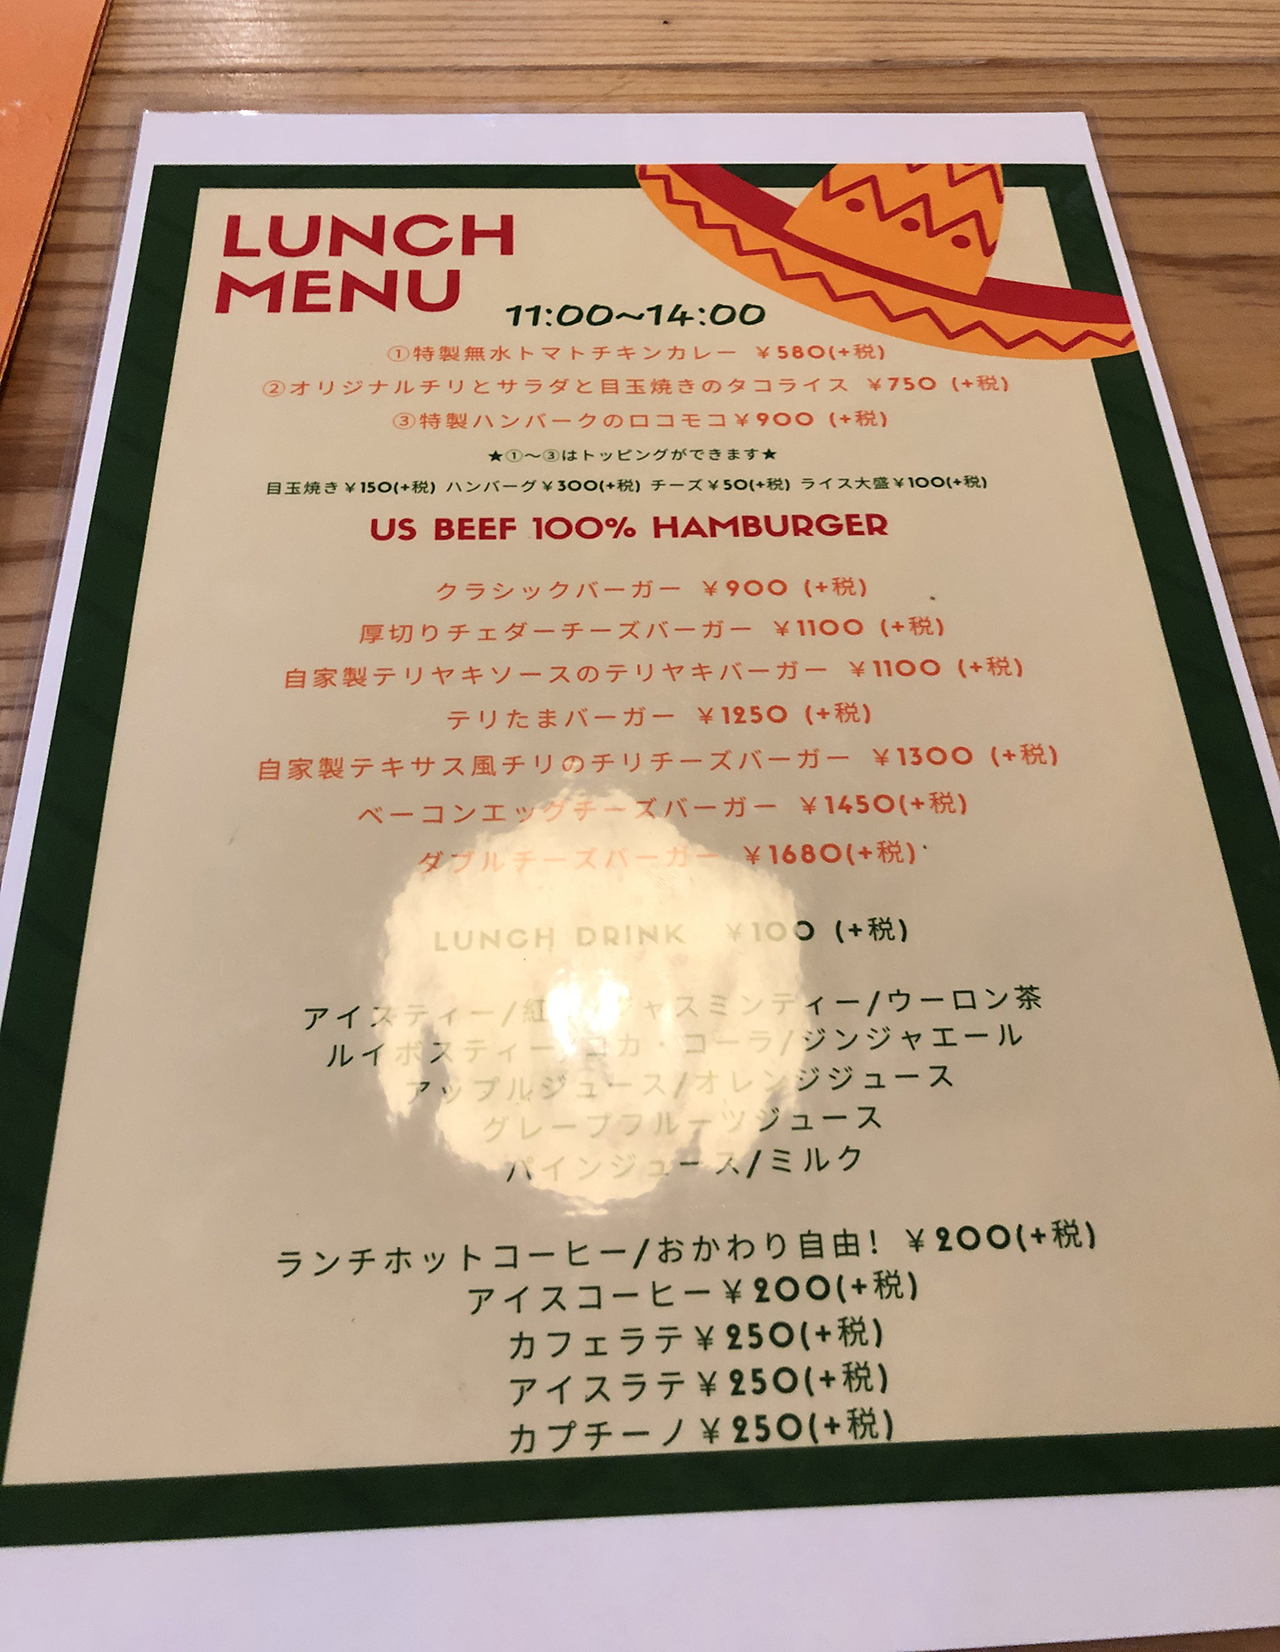 CAFE' MUNCHIES(カフェ マンチーズ)の投稿写真5